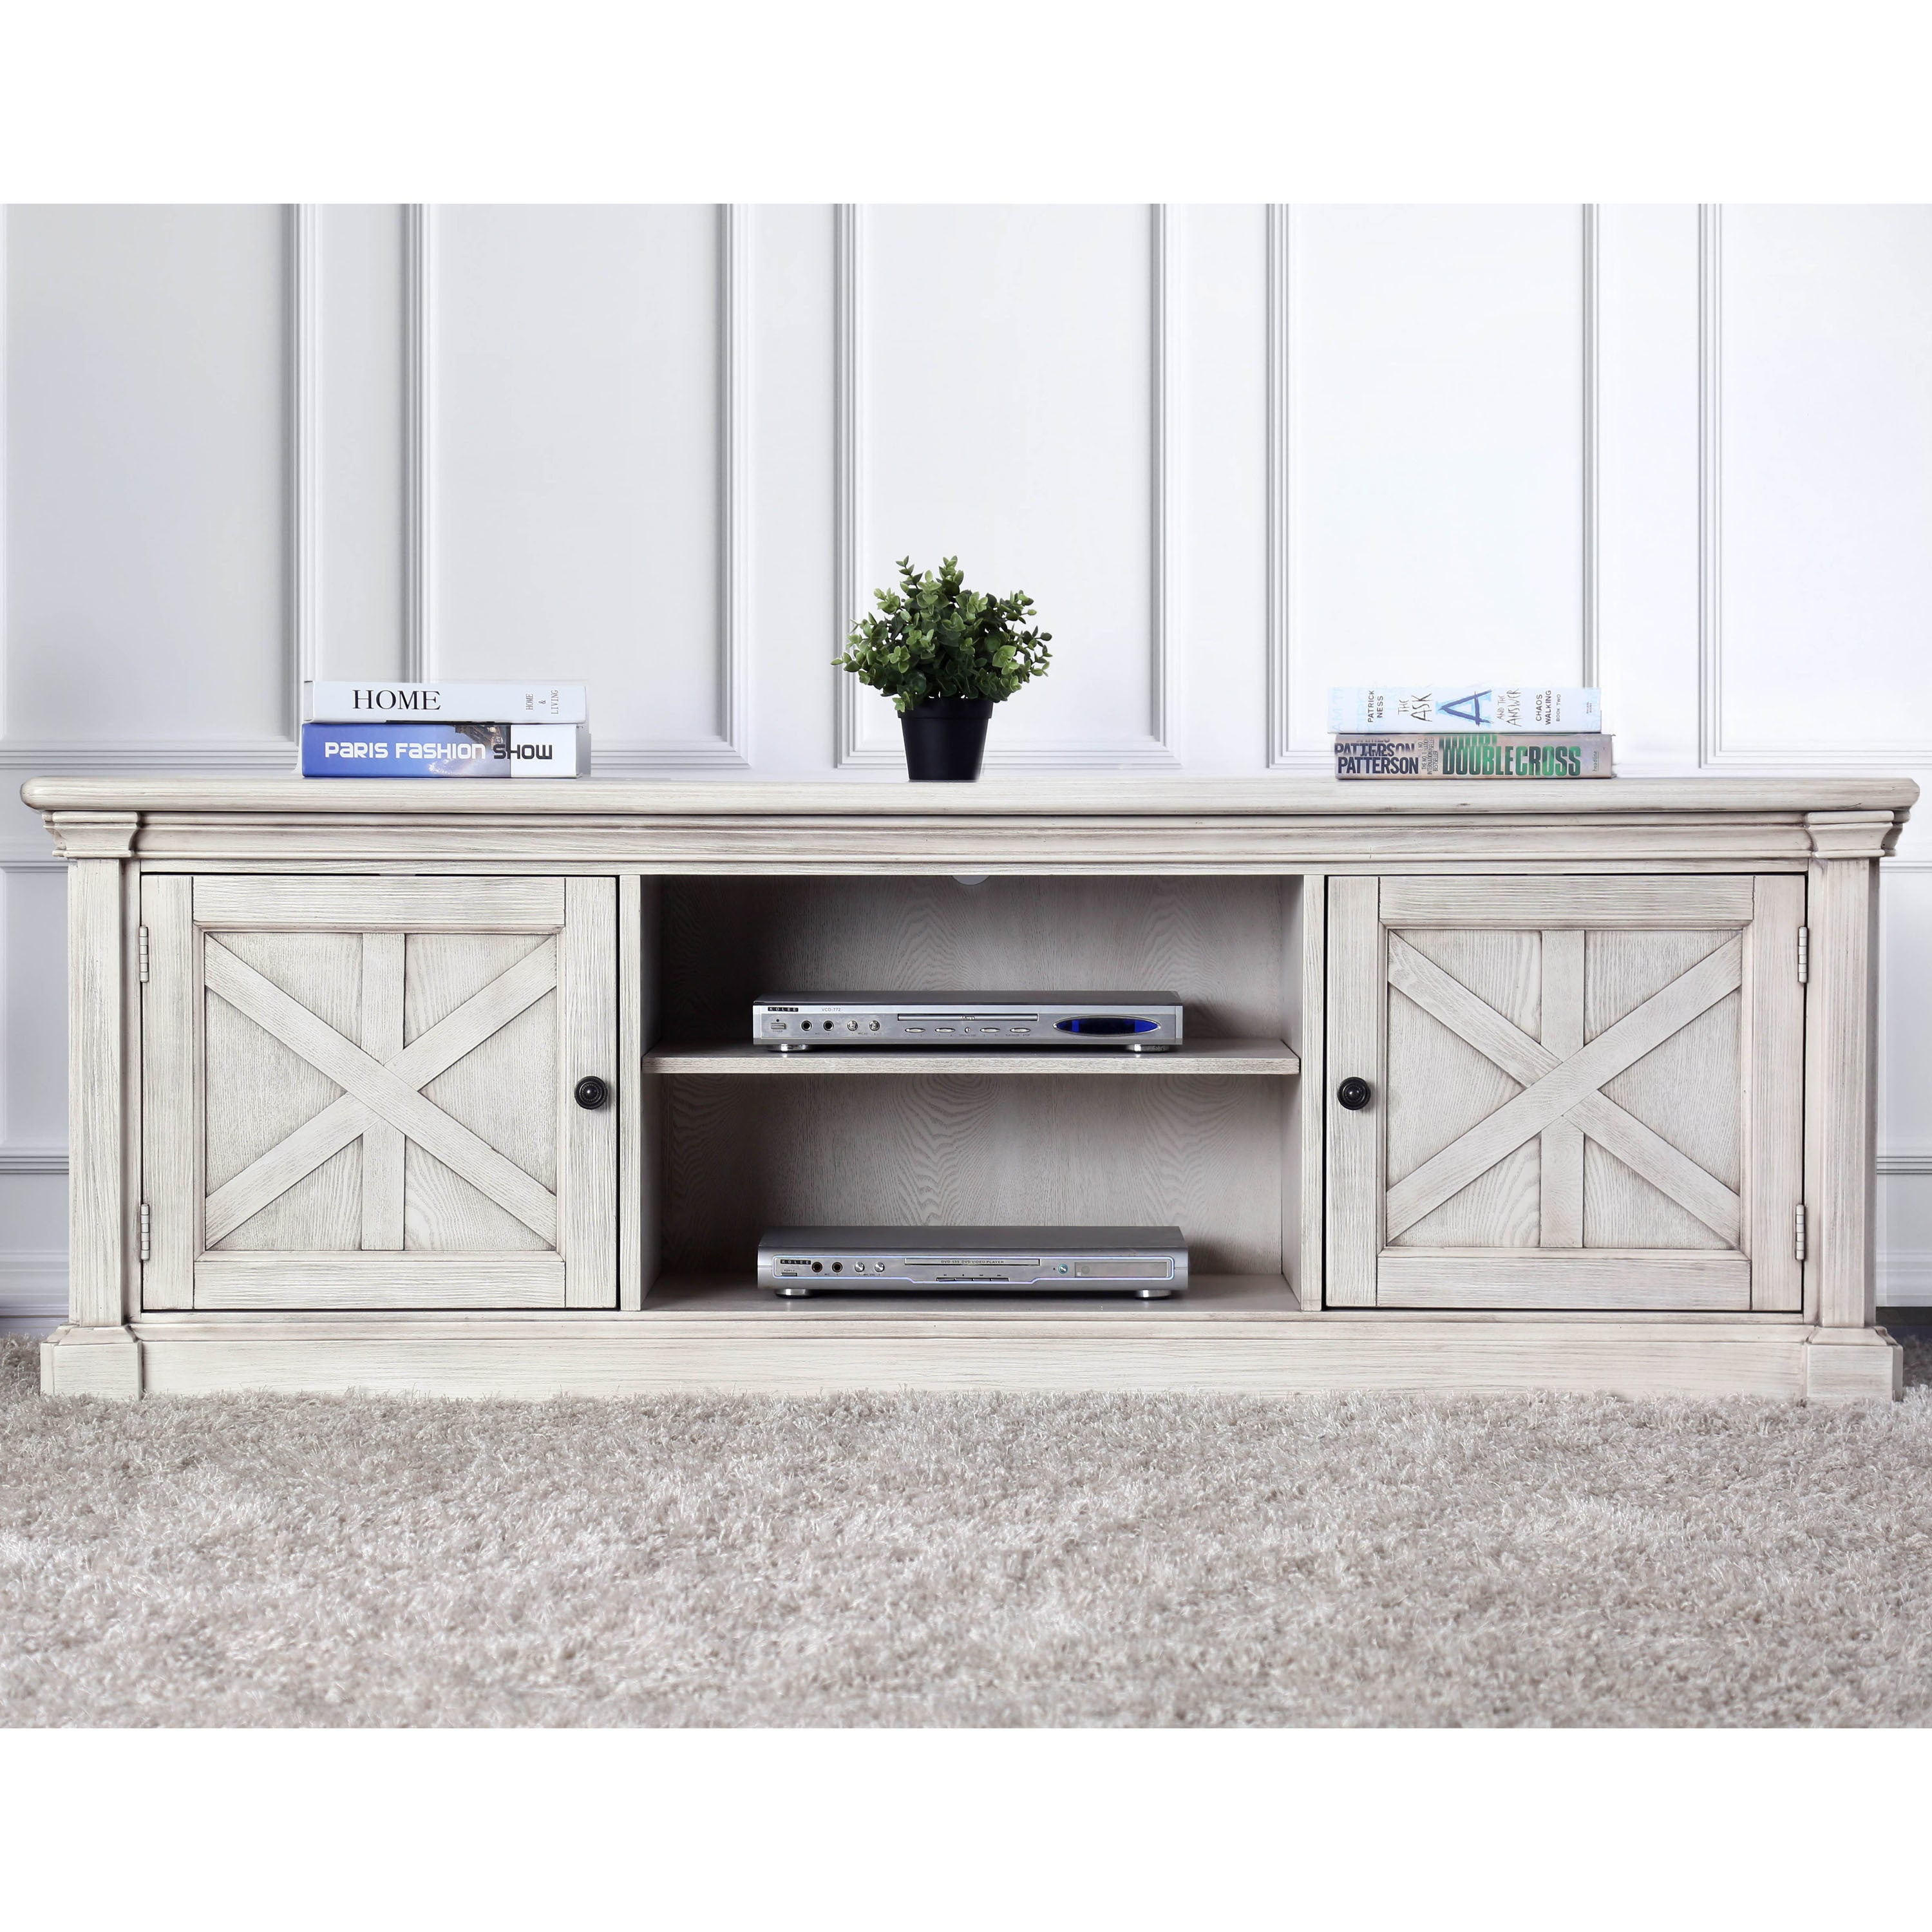 Furniture Of America Lyle Rustic White Solid Wood 2 Cabinet Tv Stand Overstock 20853123